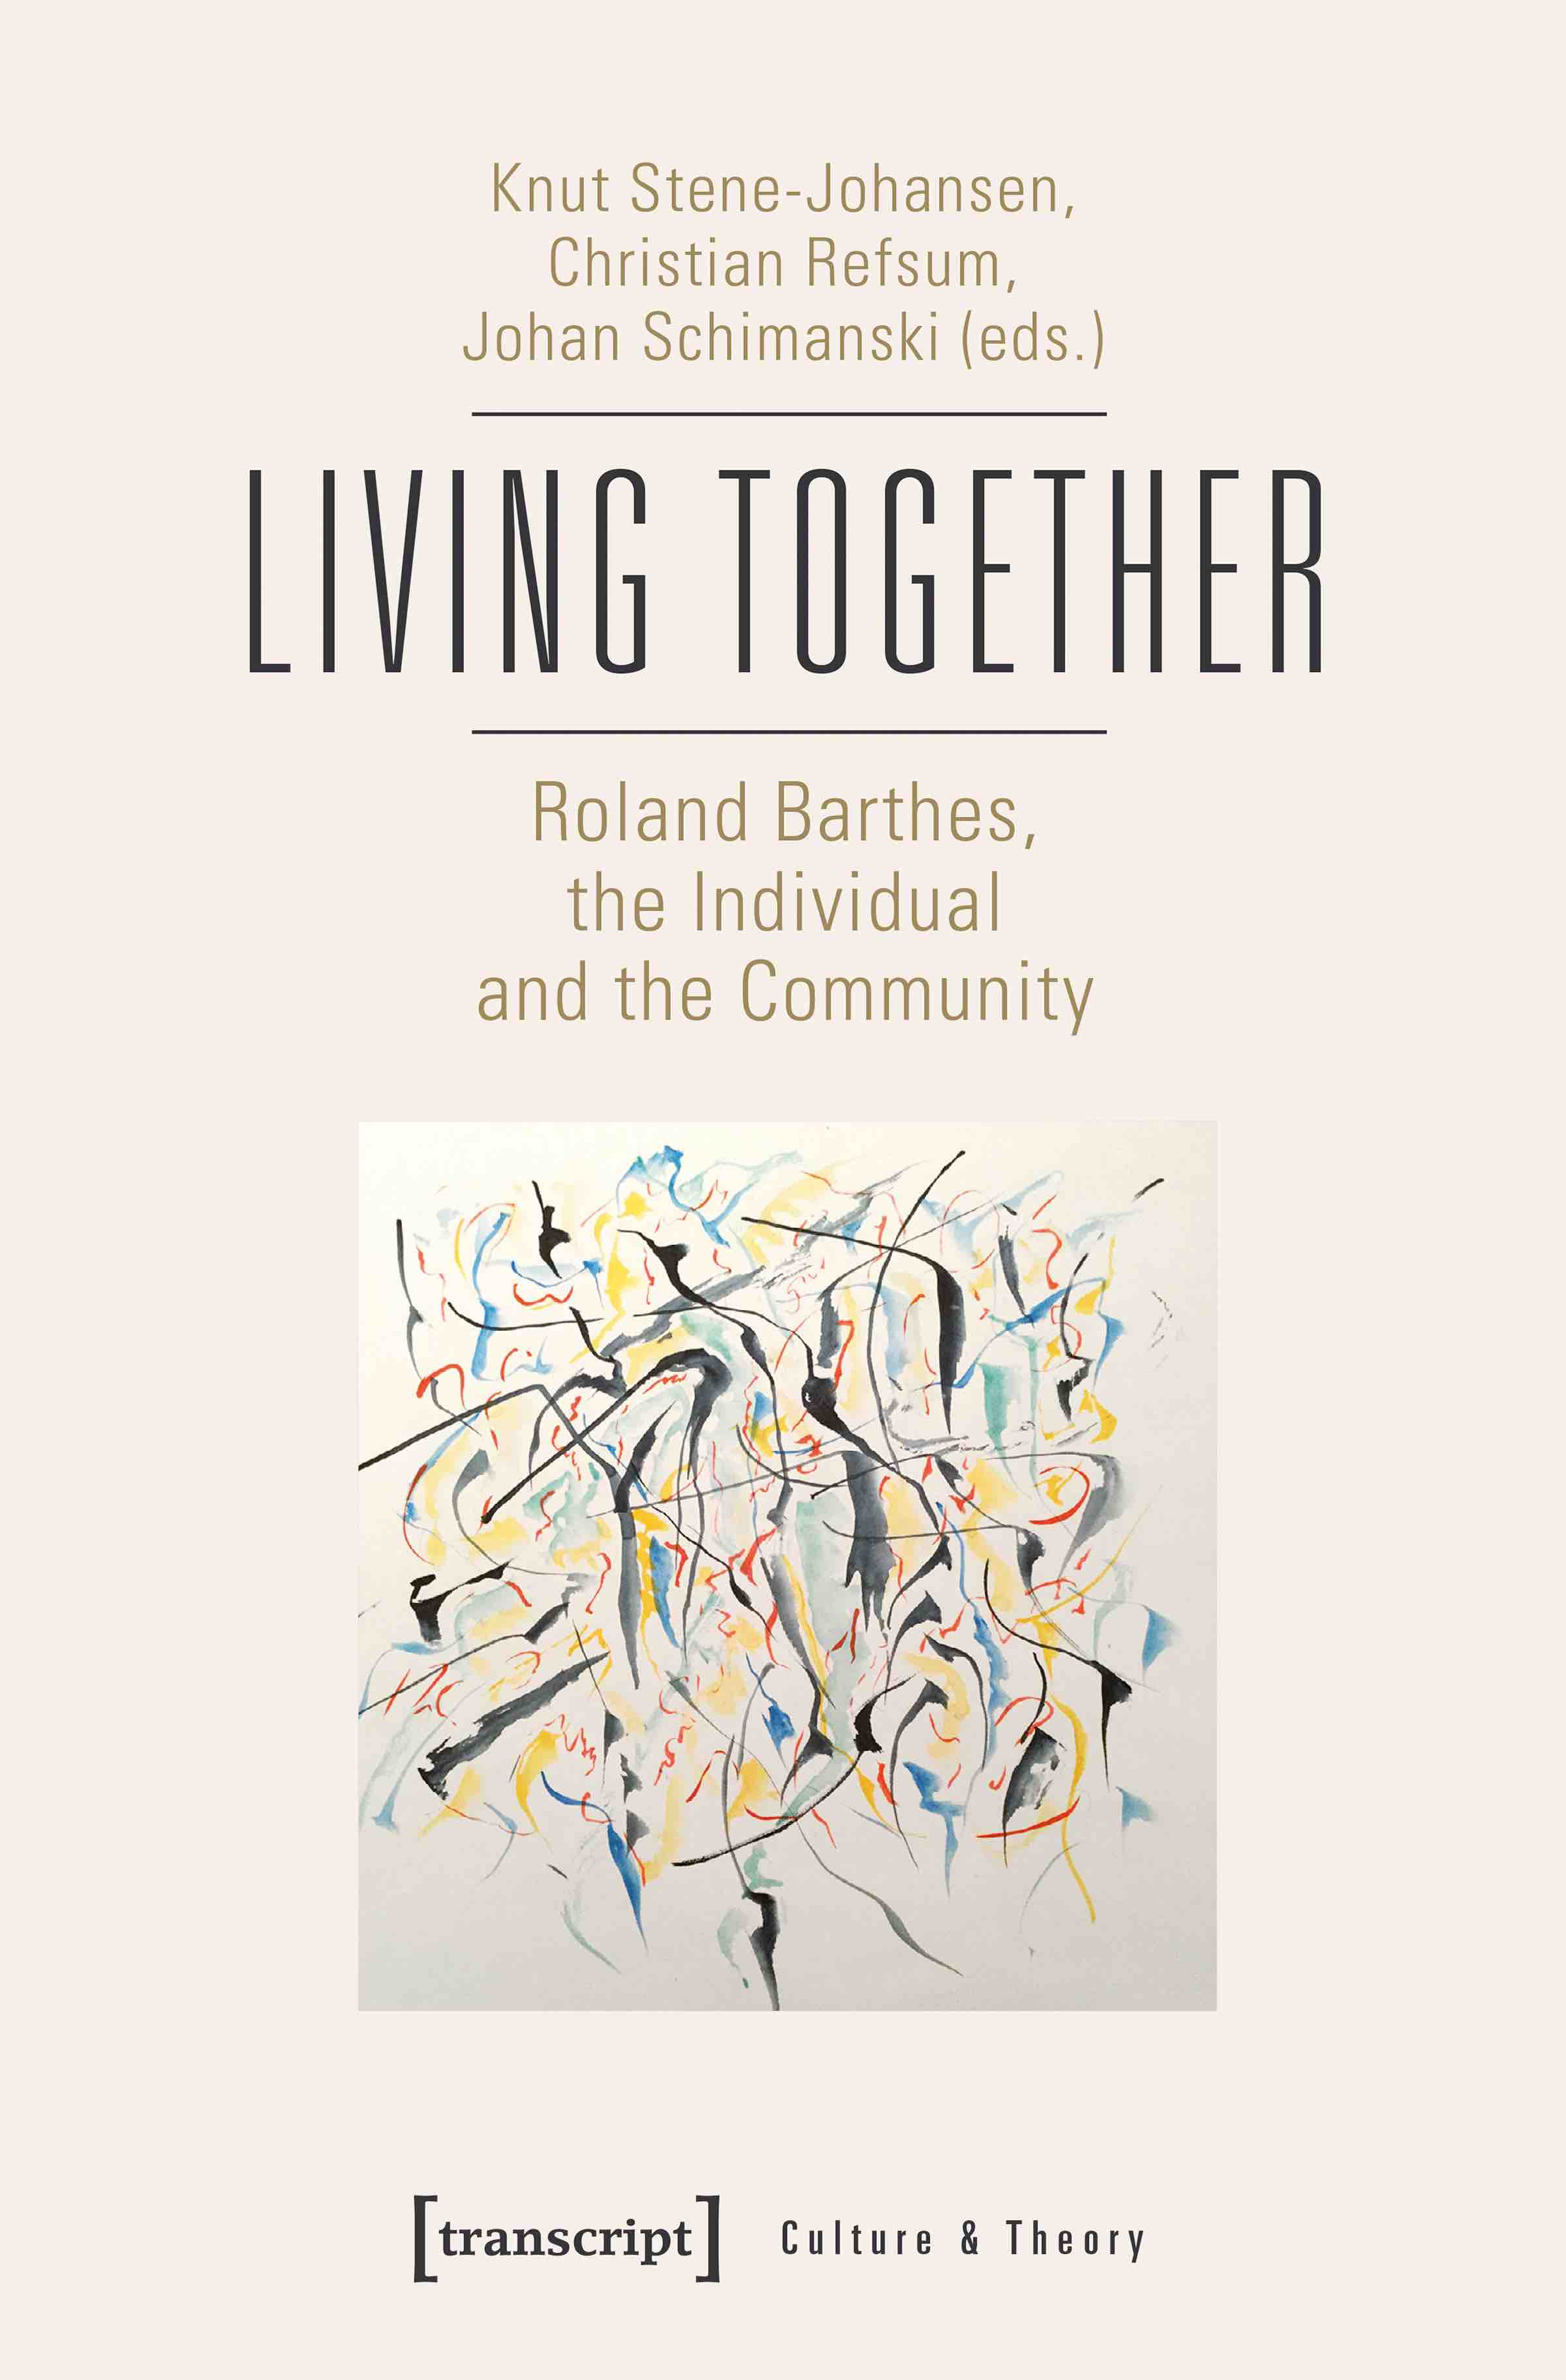 cover Stene-Johansen/Refsum/Schimanski, Living Together